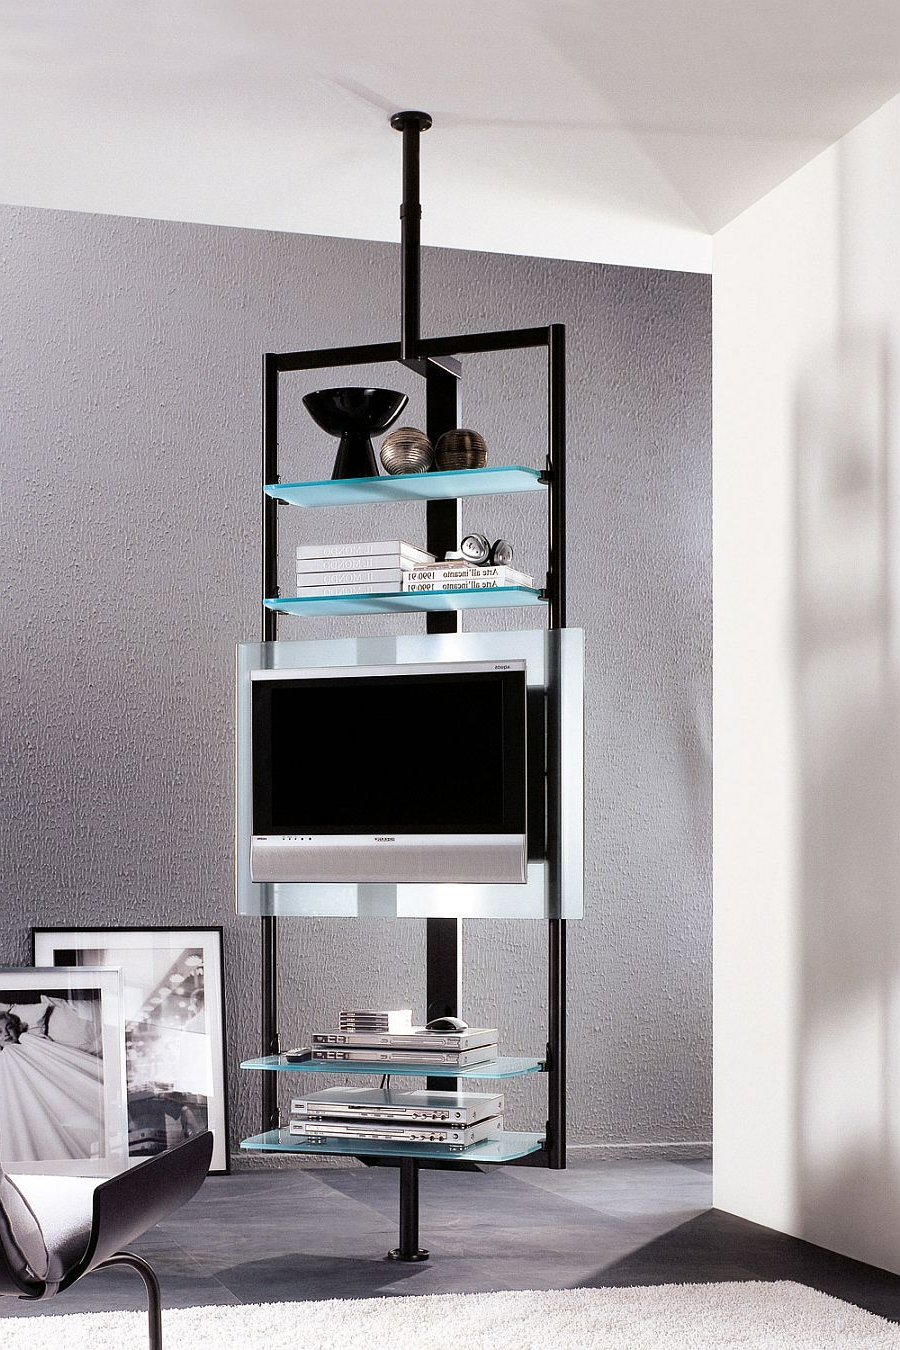 Sleek Tv Stands In Well Known Sleek Silhouette Of The Tv Stand Ensures It Takes Little Space (View 13 of 20)